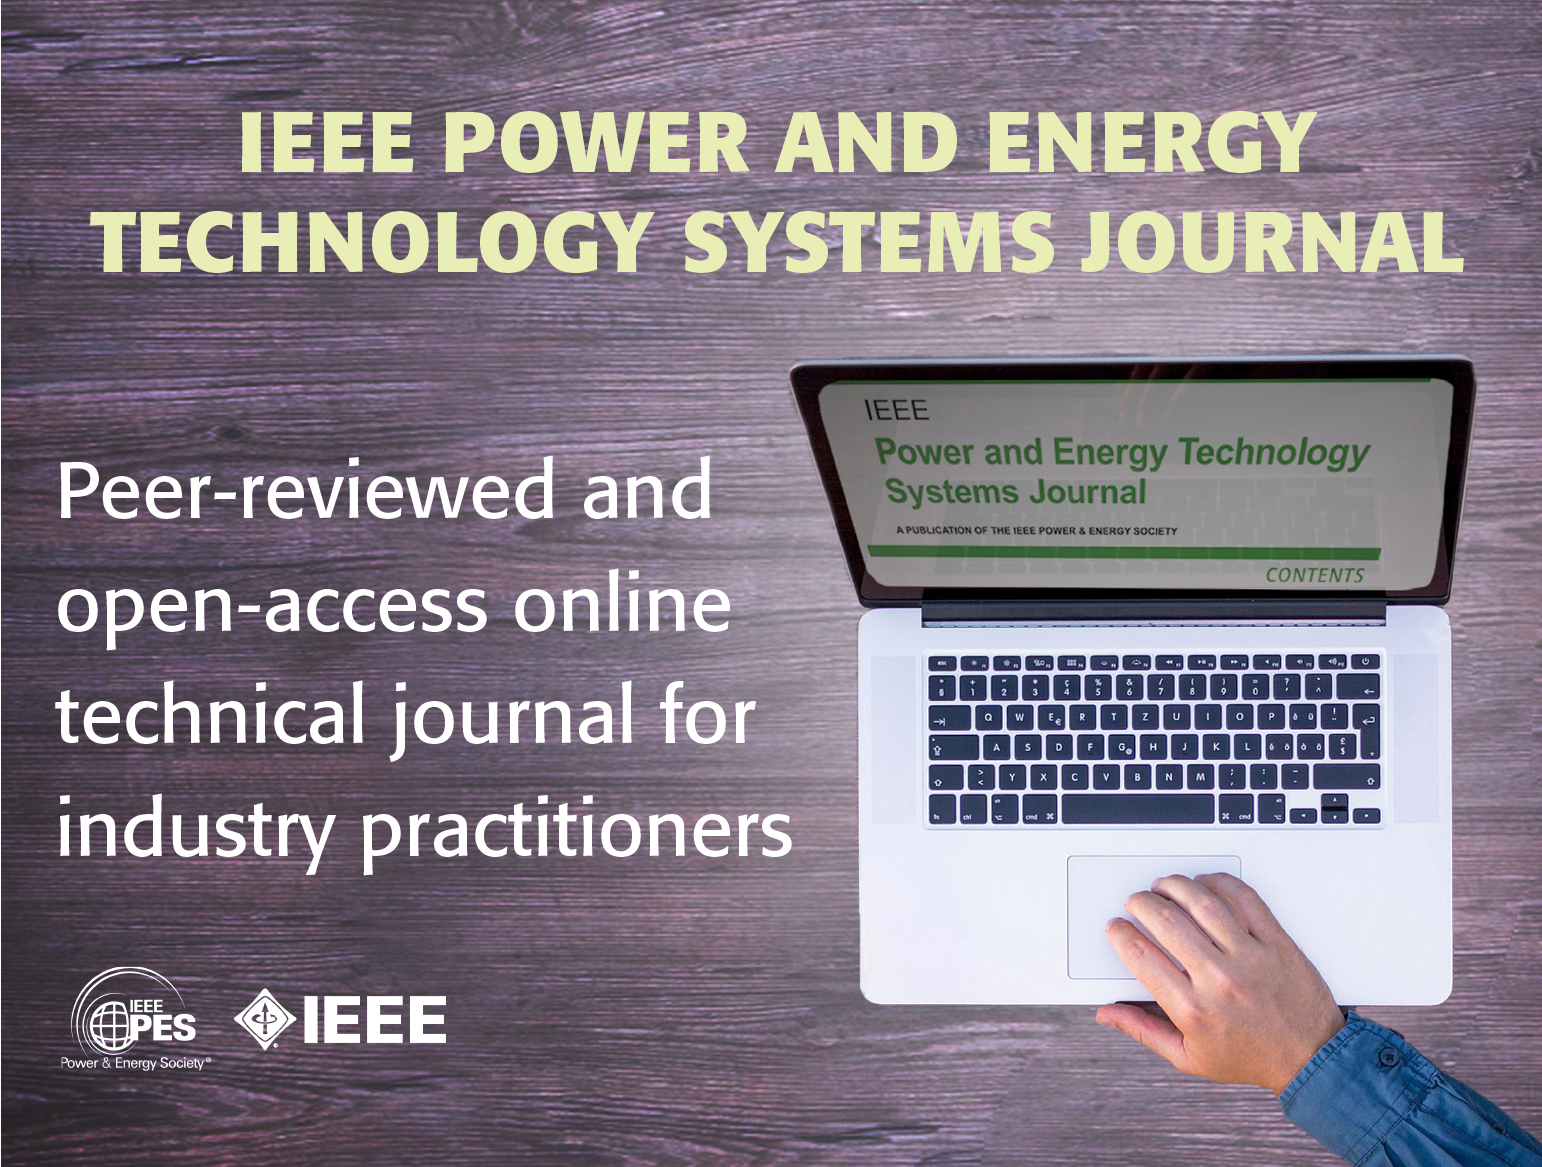 IEEE Power and Energy Technology Systems Journal